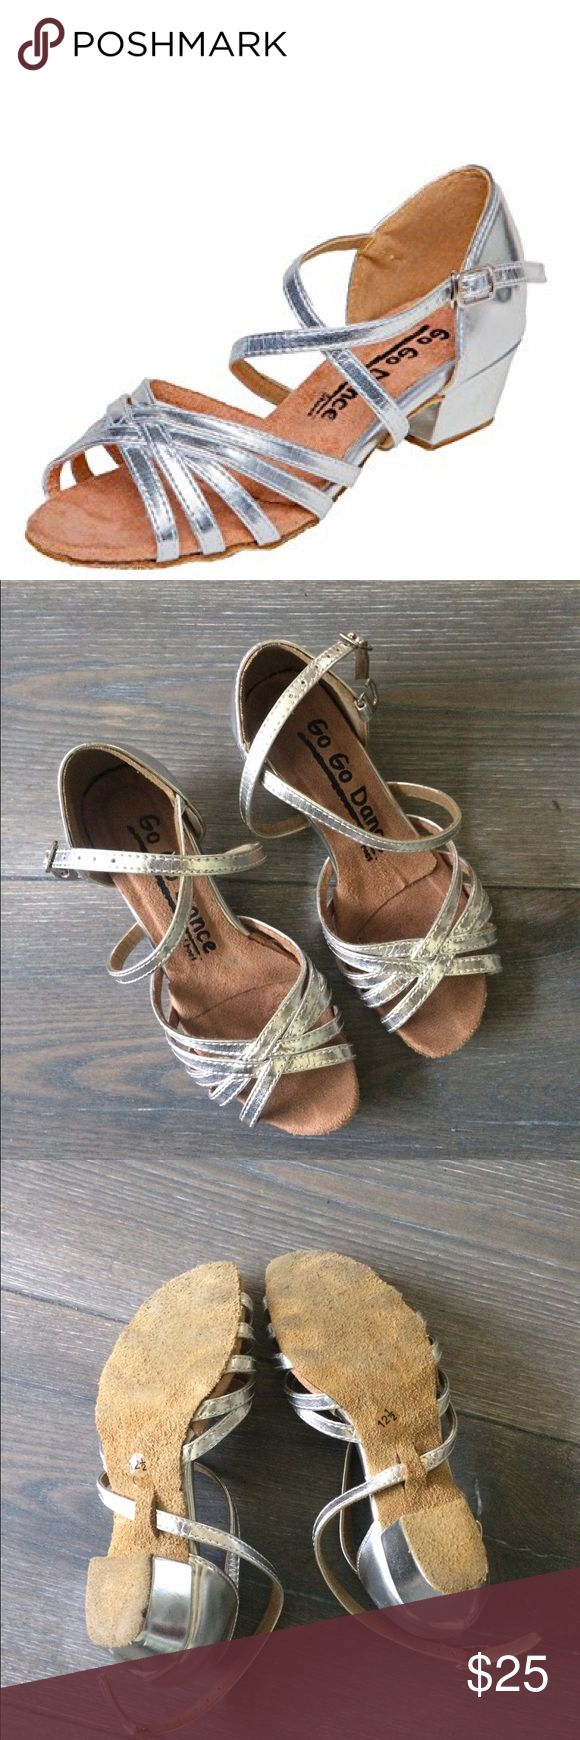 GoGo dance girl ballroom shoes size 12.5 GOGO Dance girl ballroom shoes size 12.5. Leather silver with suede sole. Ideal for practice dancing. GoGo Dance Shoes